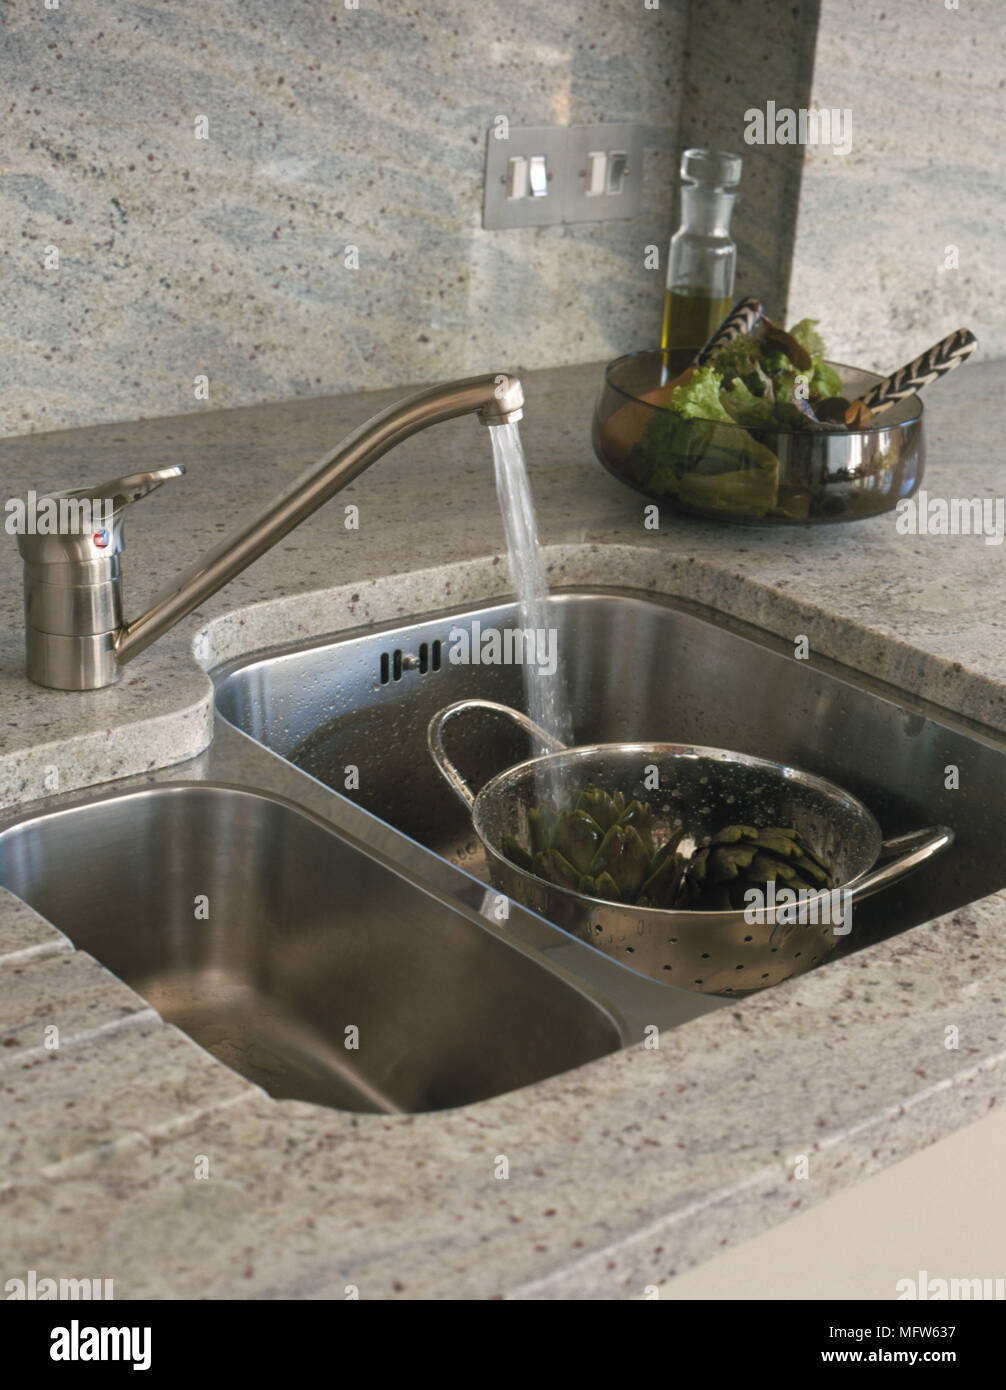 Details of a modern stainless steel kitchen sink with a colander ...